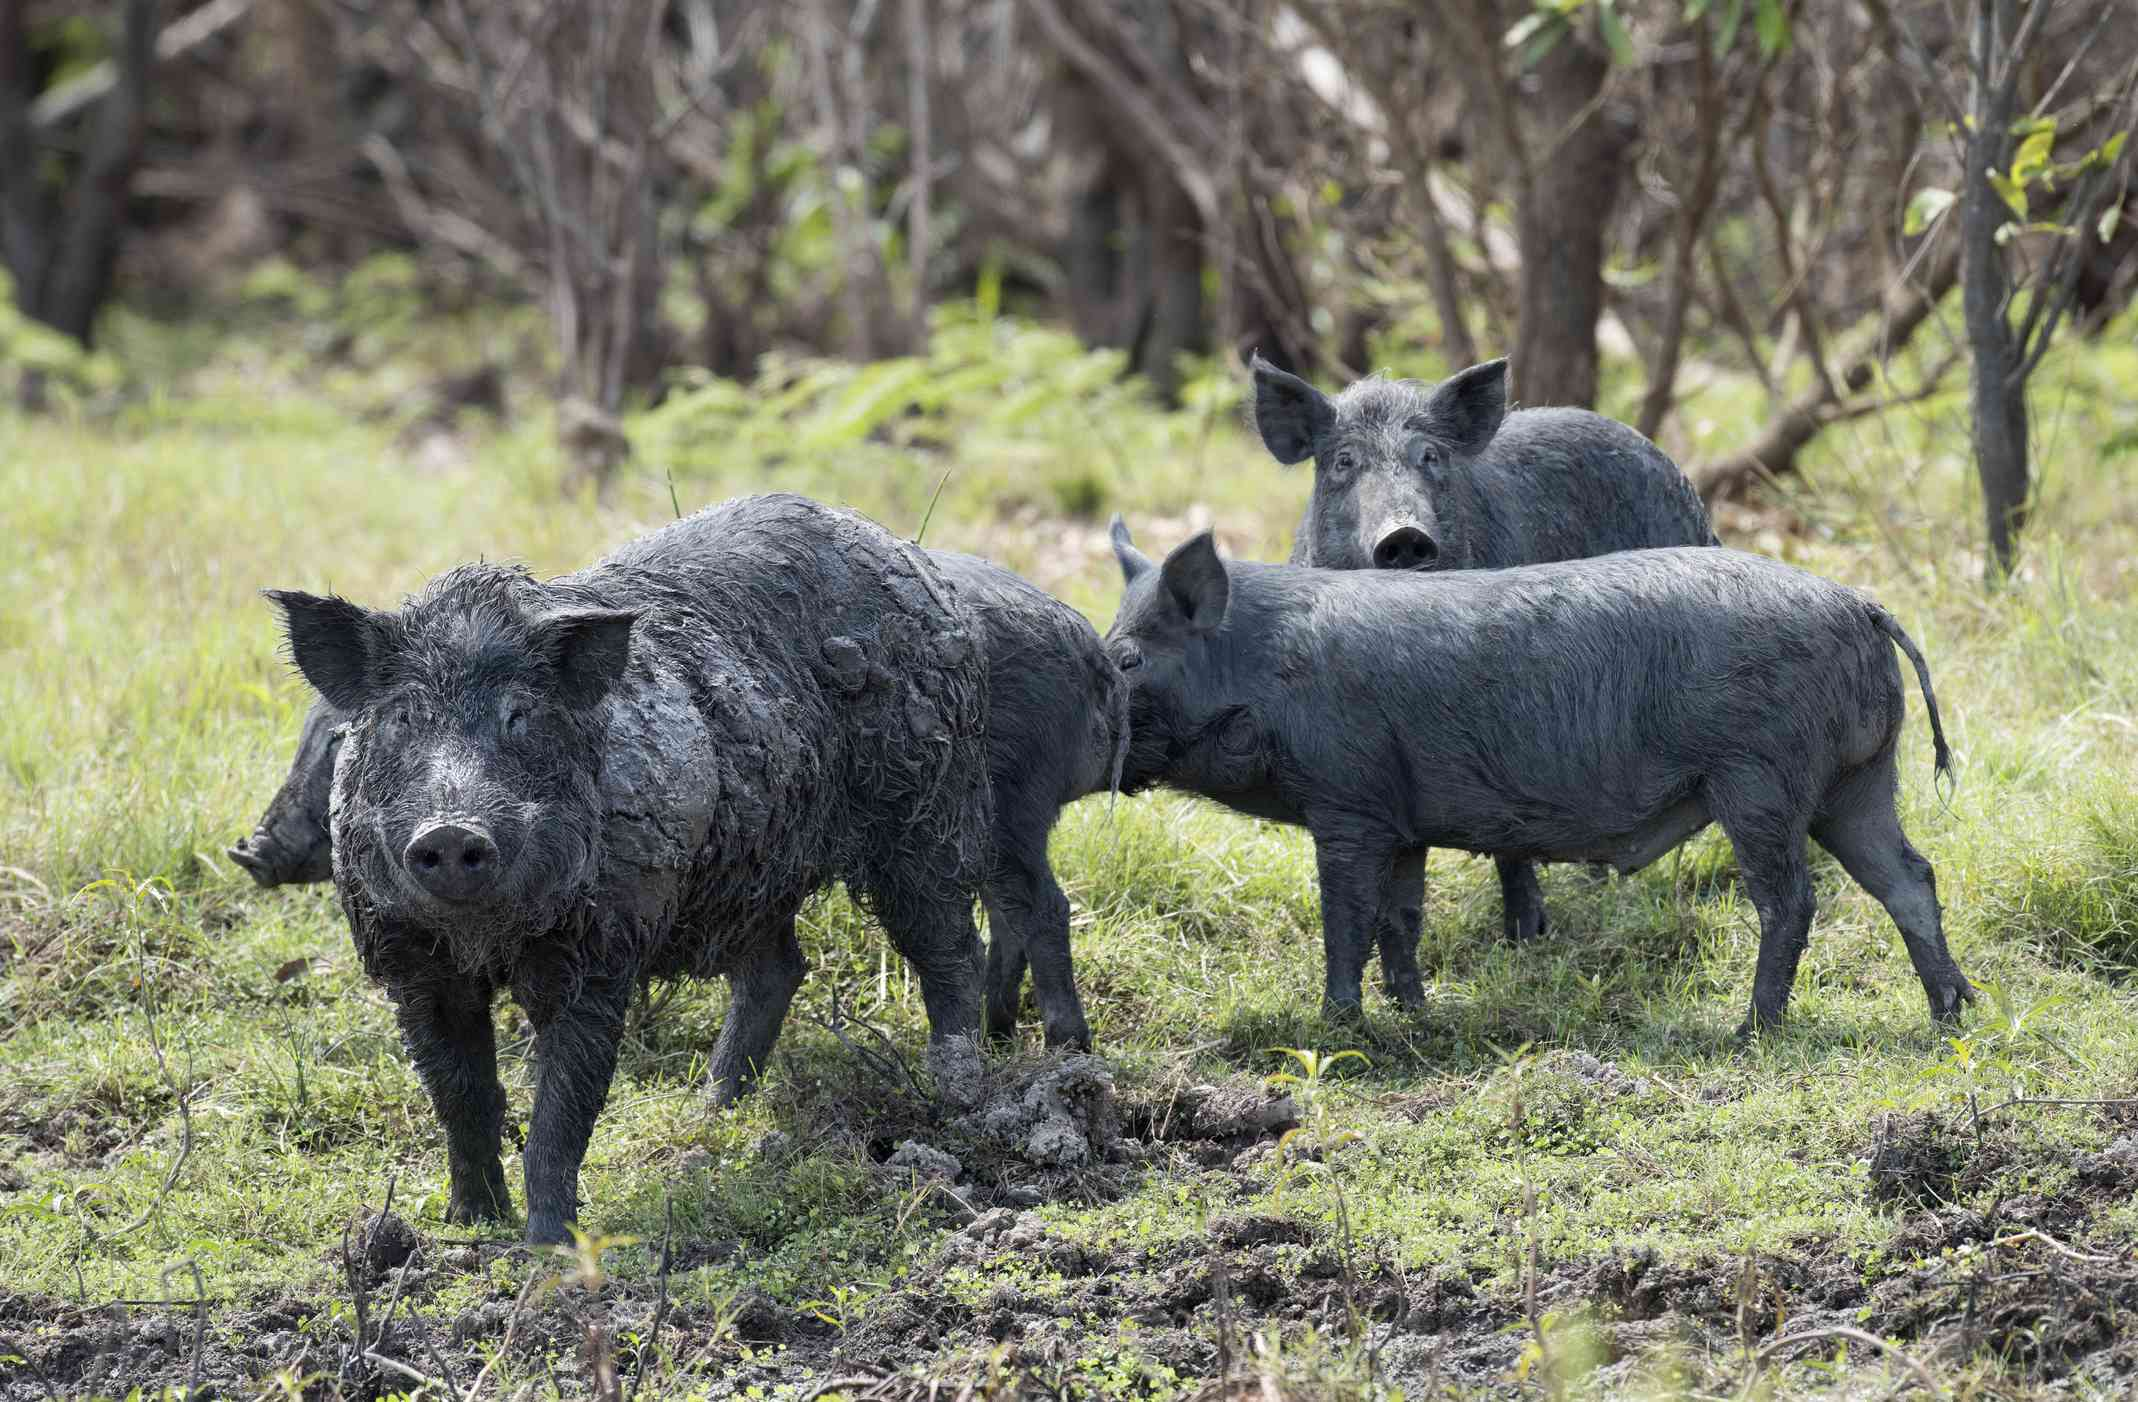 Four black wild pigs standing in a field of grass